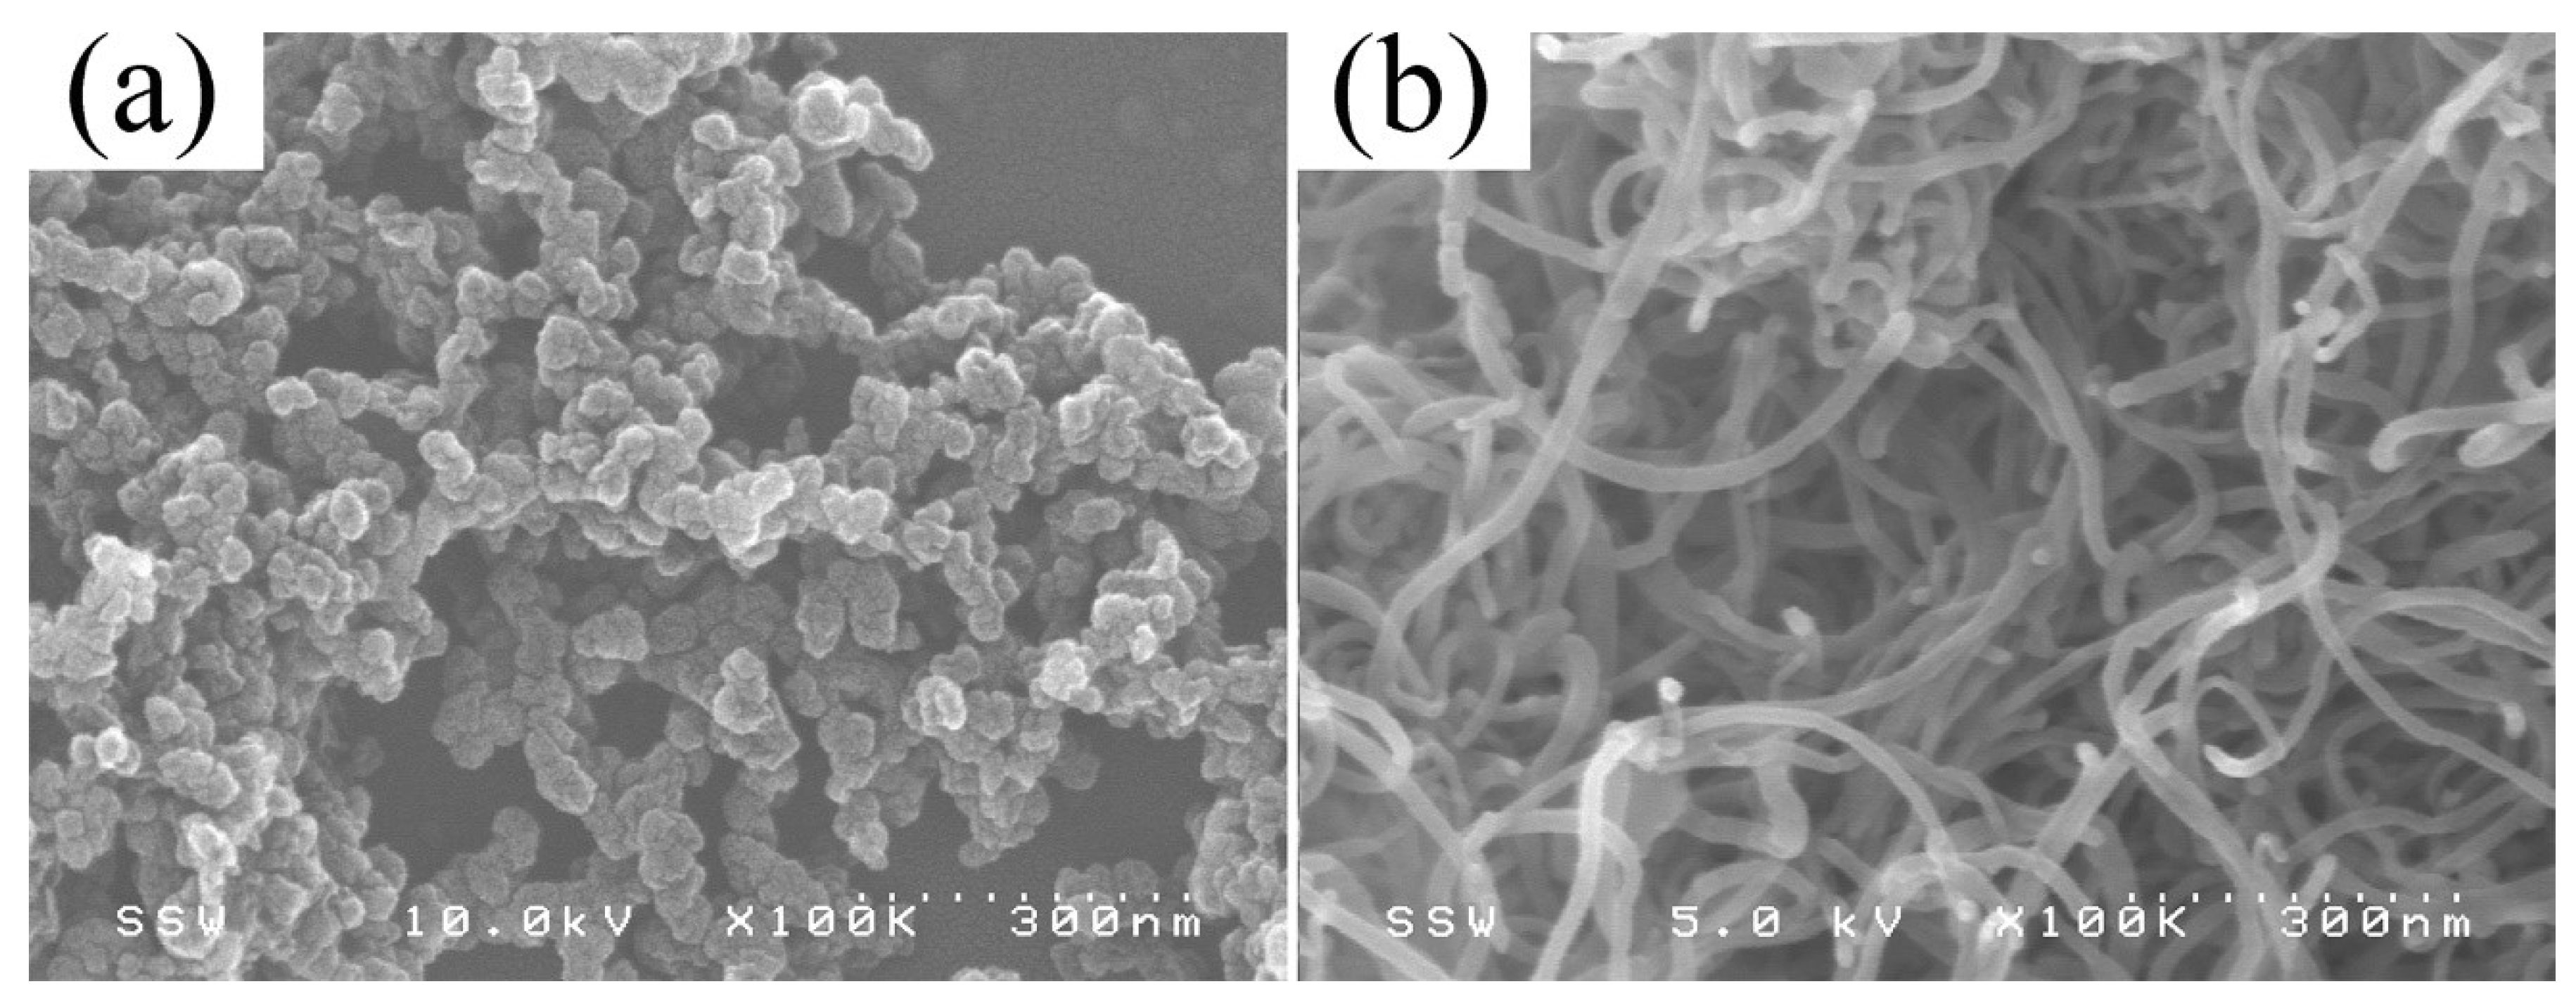 Nanomaterials | Free Full-Text | Effect of Hybrid Carbon